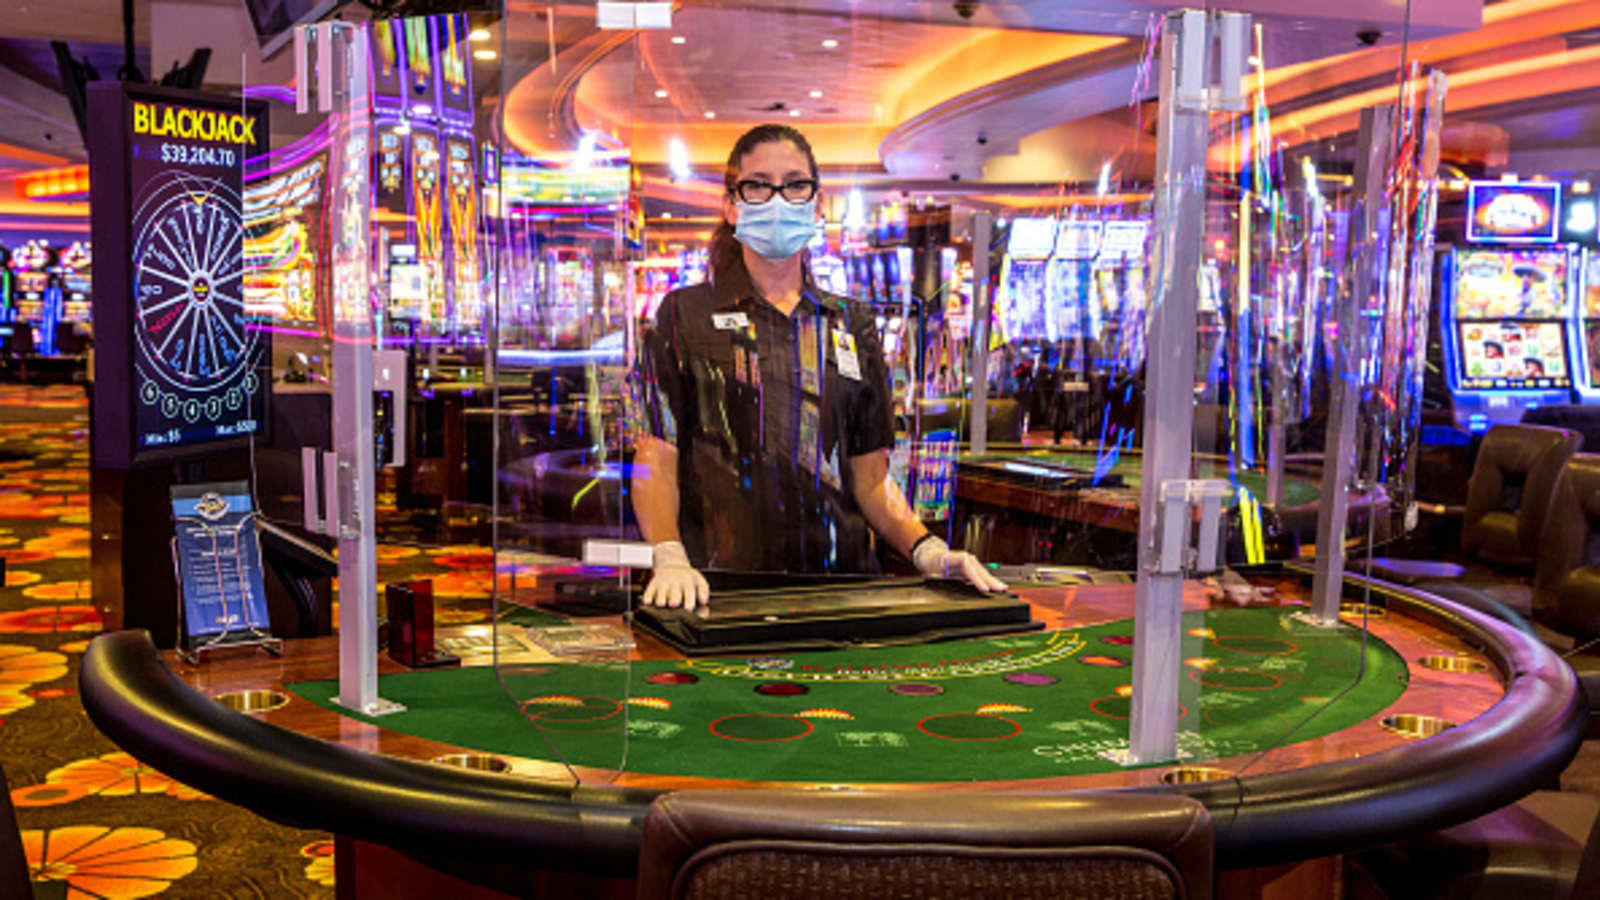 Coronavirus may sway regulators to allow casinos to say good-bye to cash